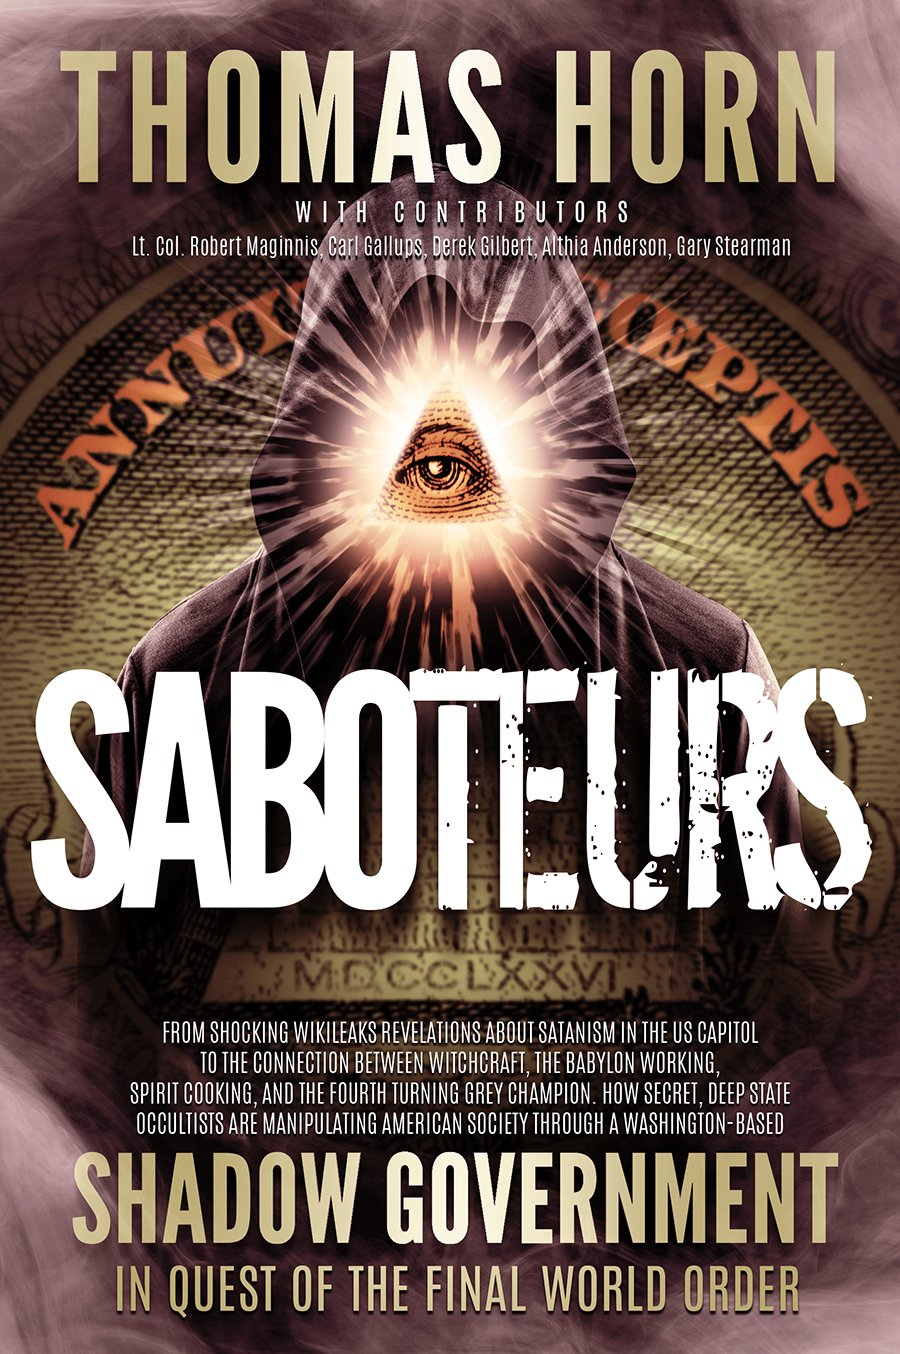 "NEW SERIES STARTS NEXT WEEK! (BASED ON TOM HORN'S ELECTRIFYING TOP-SECRET NEW PROJECT ""SABOTEURS!"")"